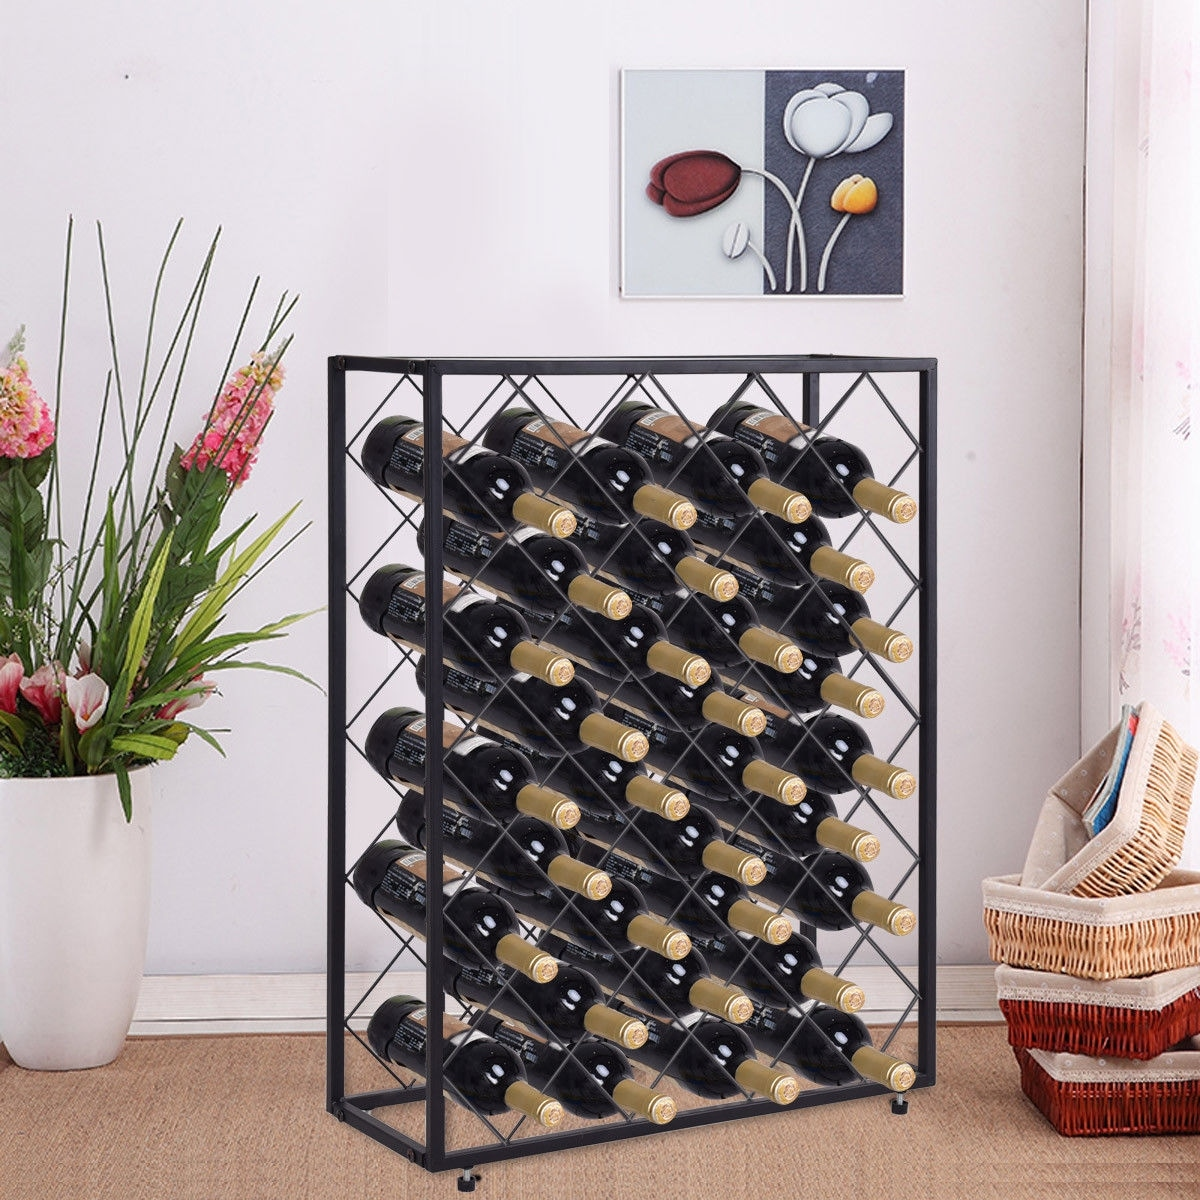 Shop Gymax 32 Bottle Wine Rack Metal Storage Display Liquor Cabinet